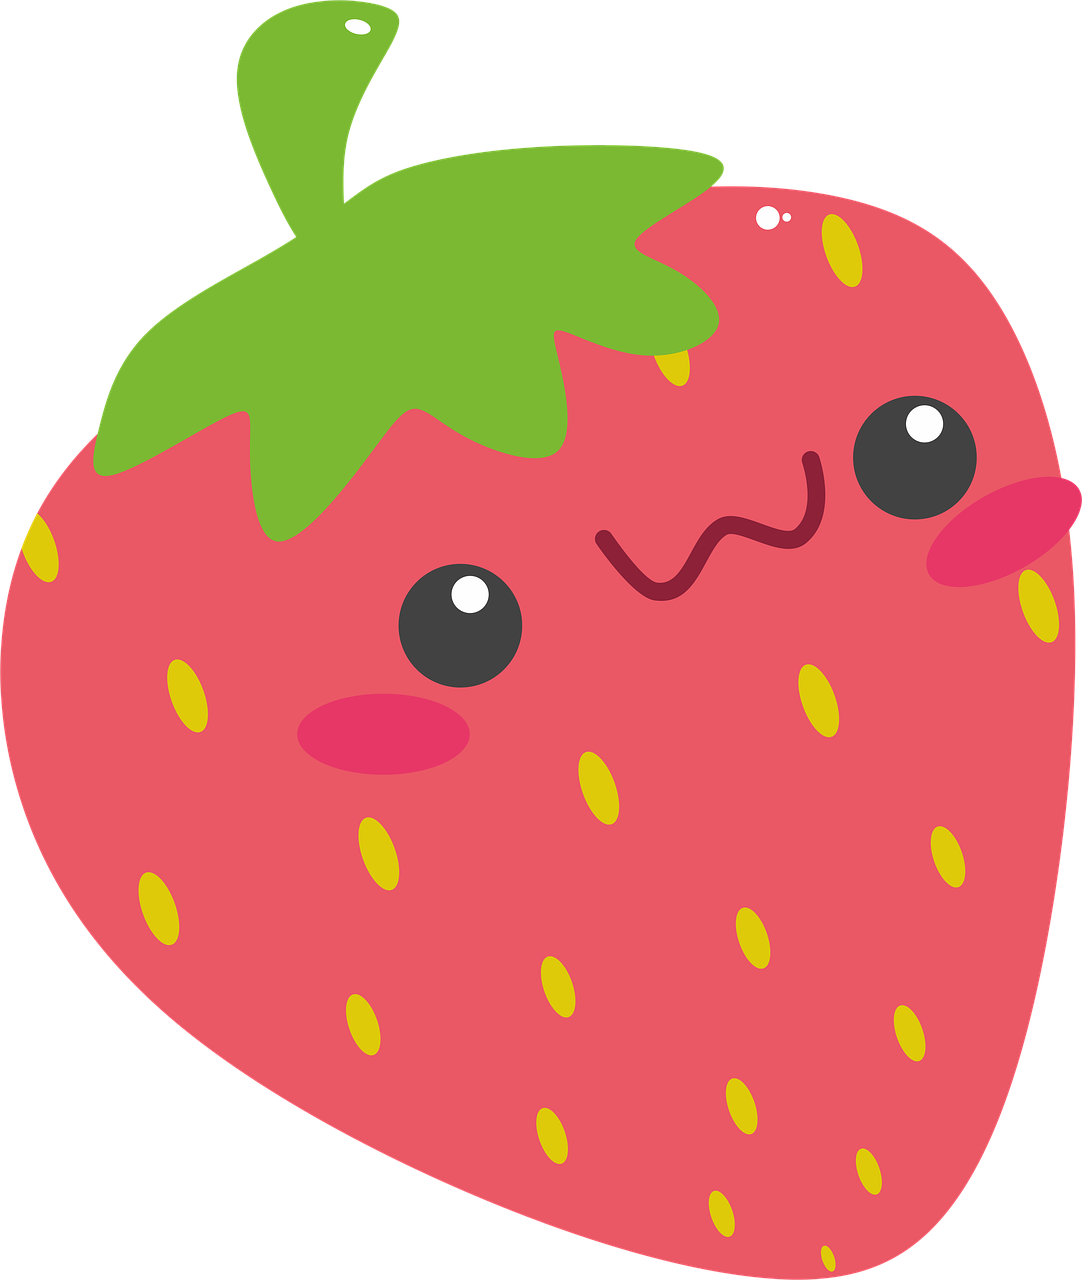 Strawberry red rosa network. Strawberries clipart kawaii